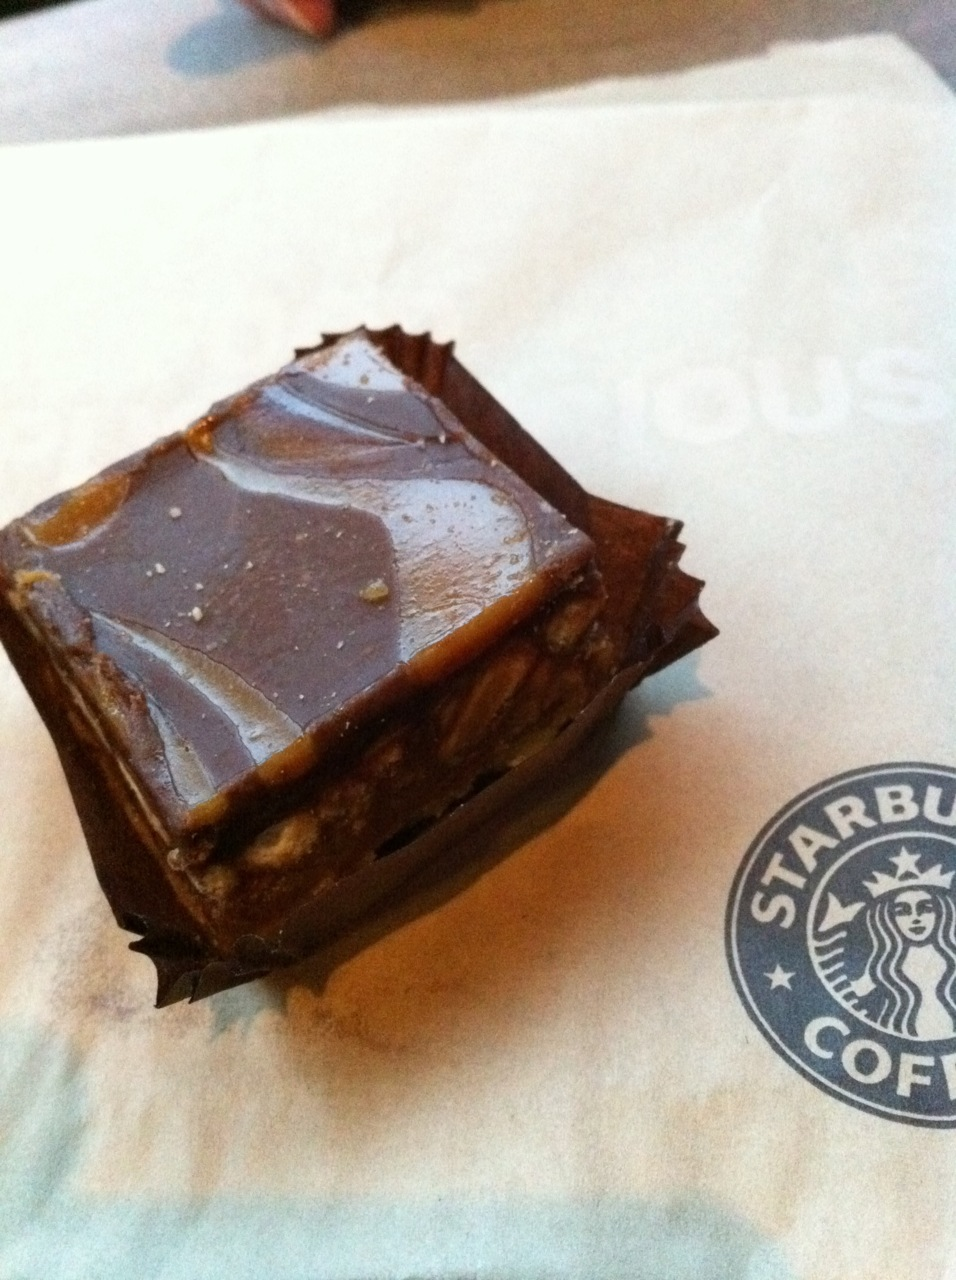 Salted Caramel Sweet Square, Starbucks.